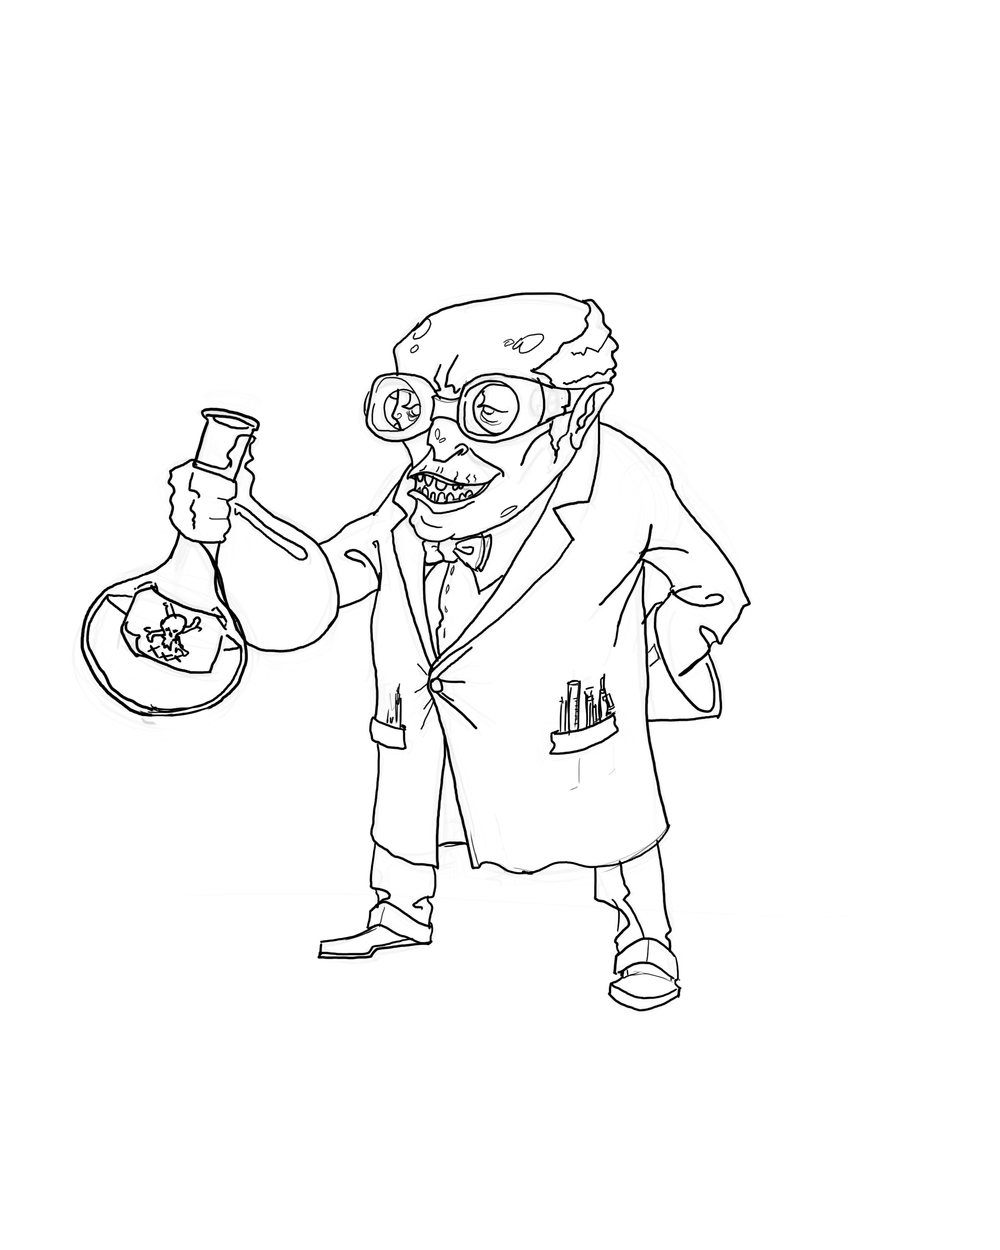 mad scientist.jpg